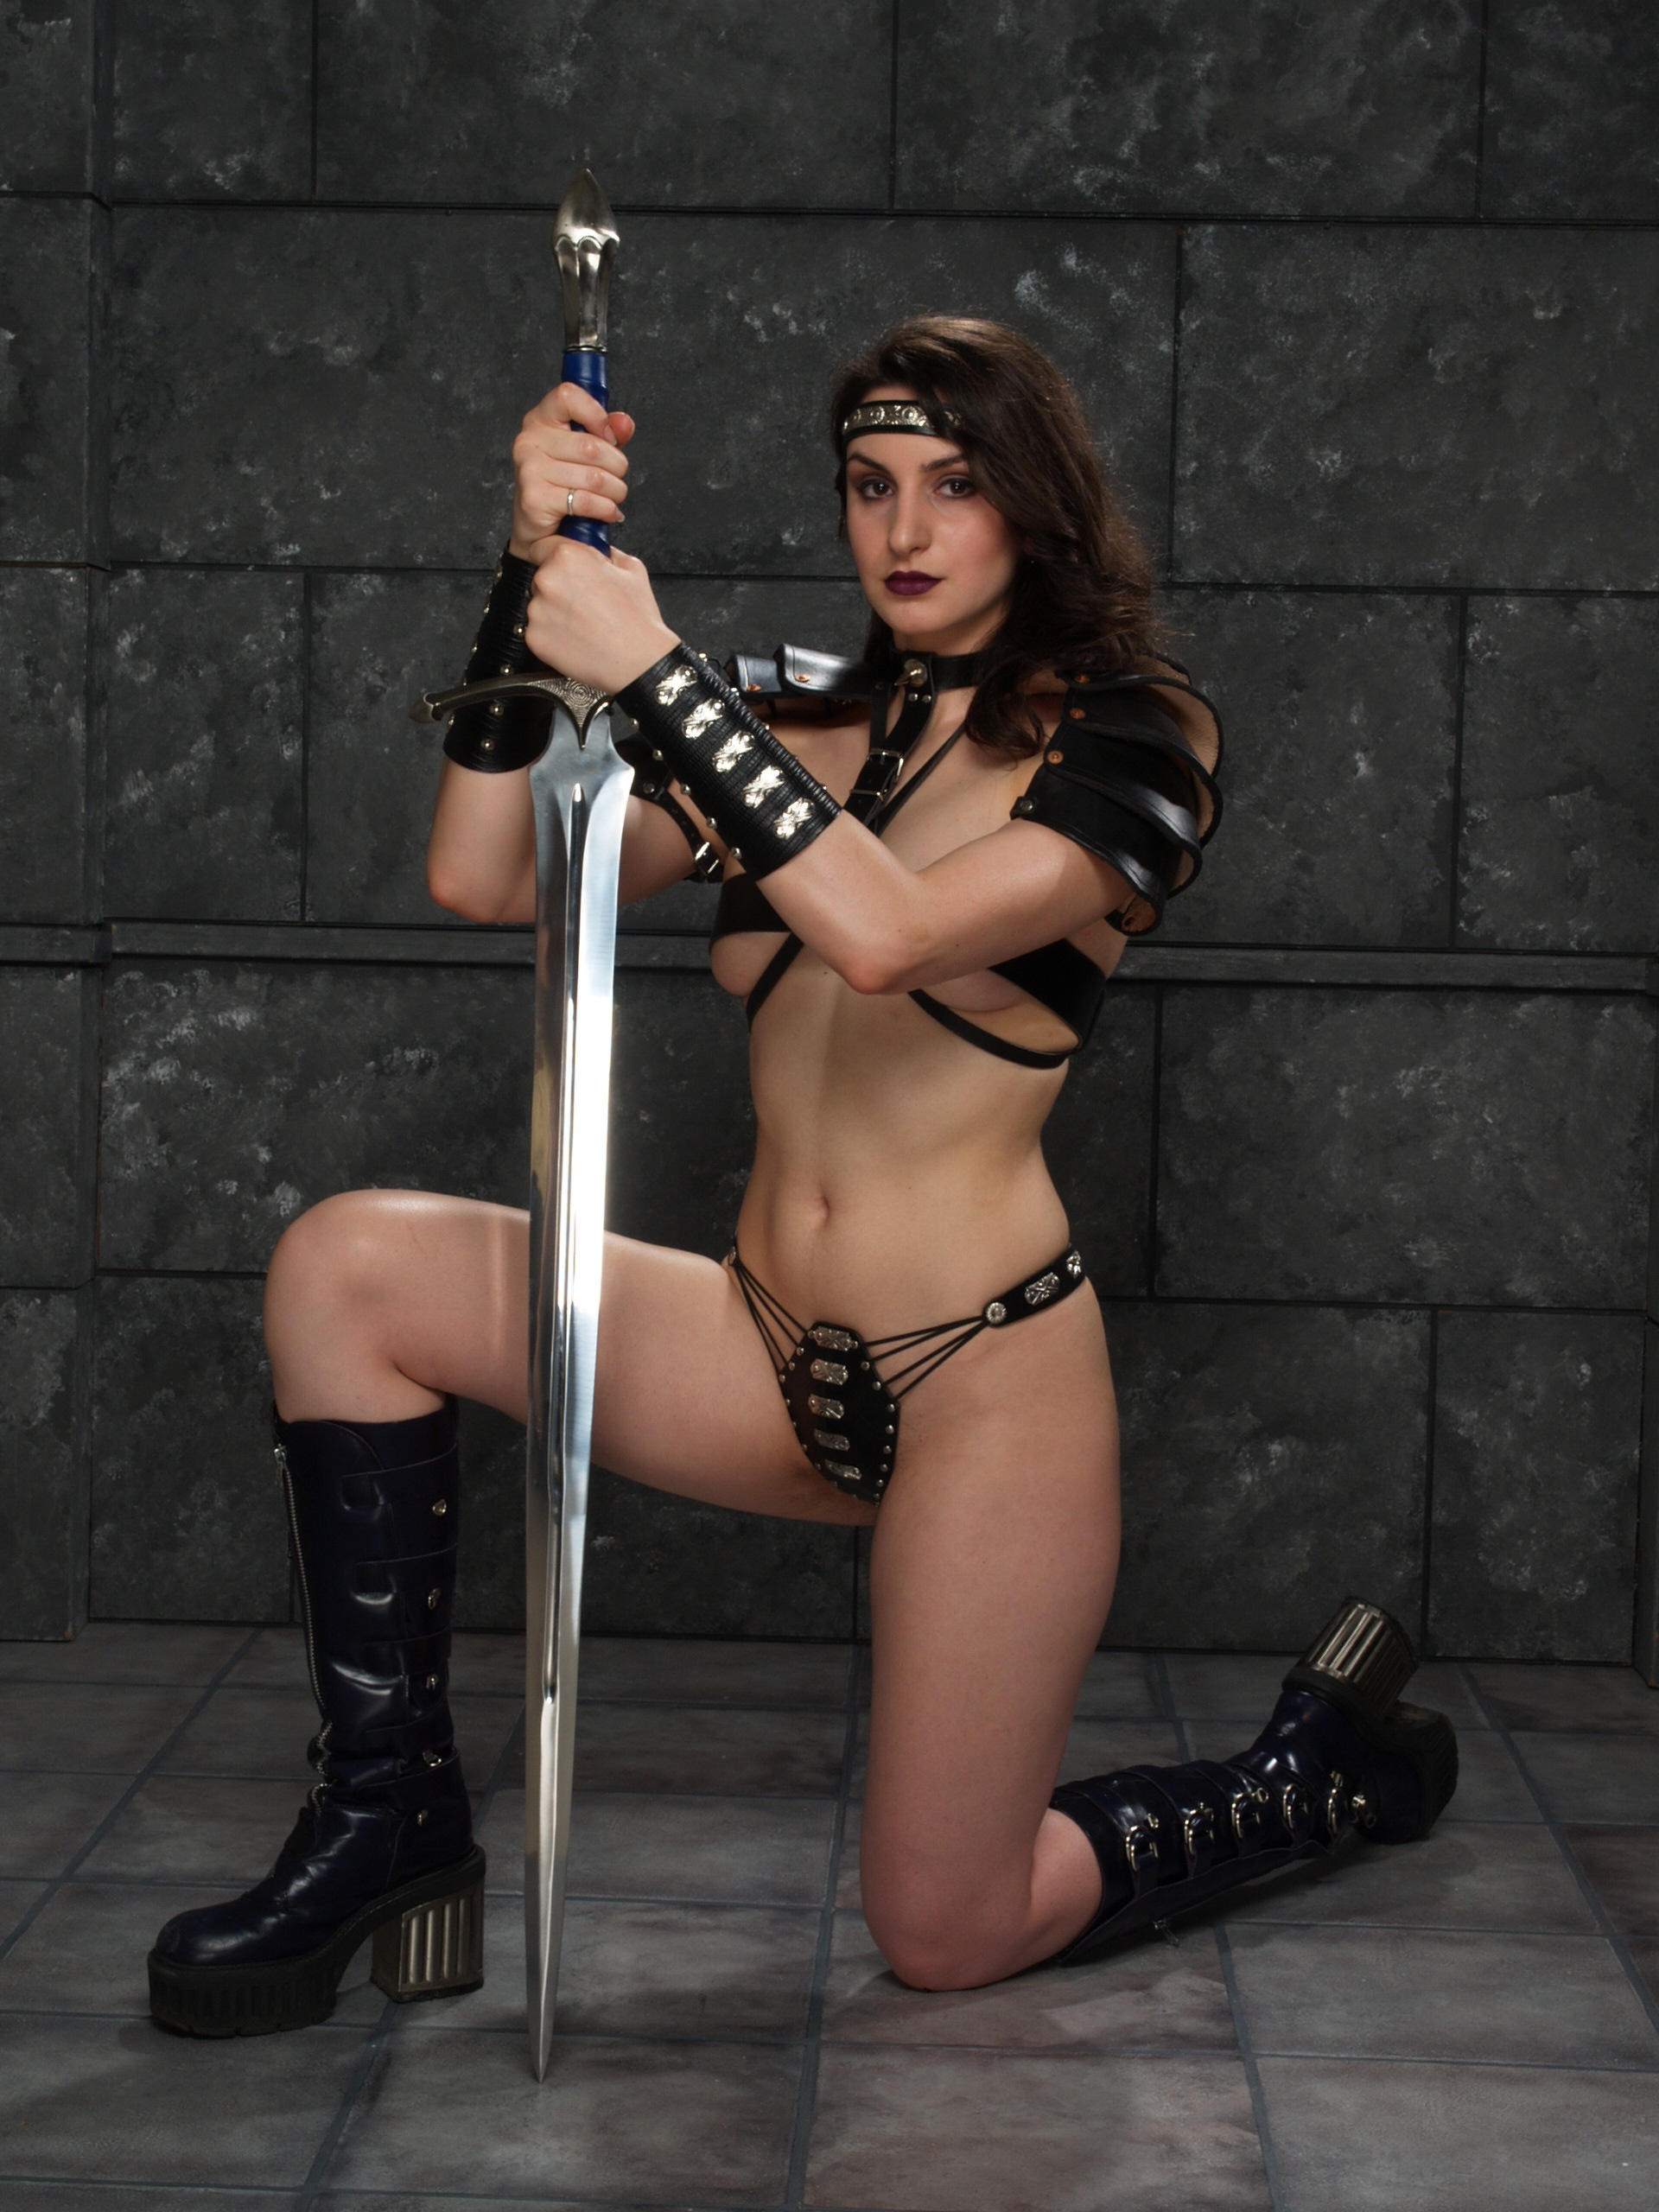 Porn fantasy warrior adult videos